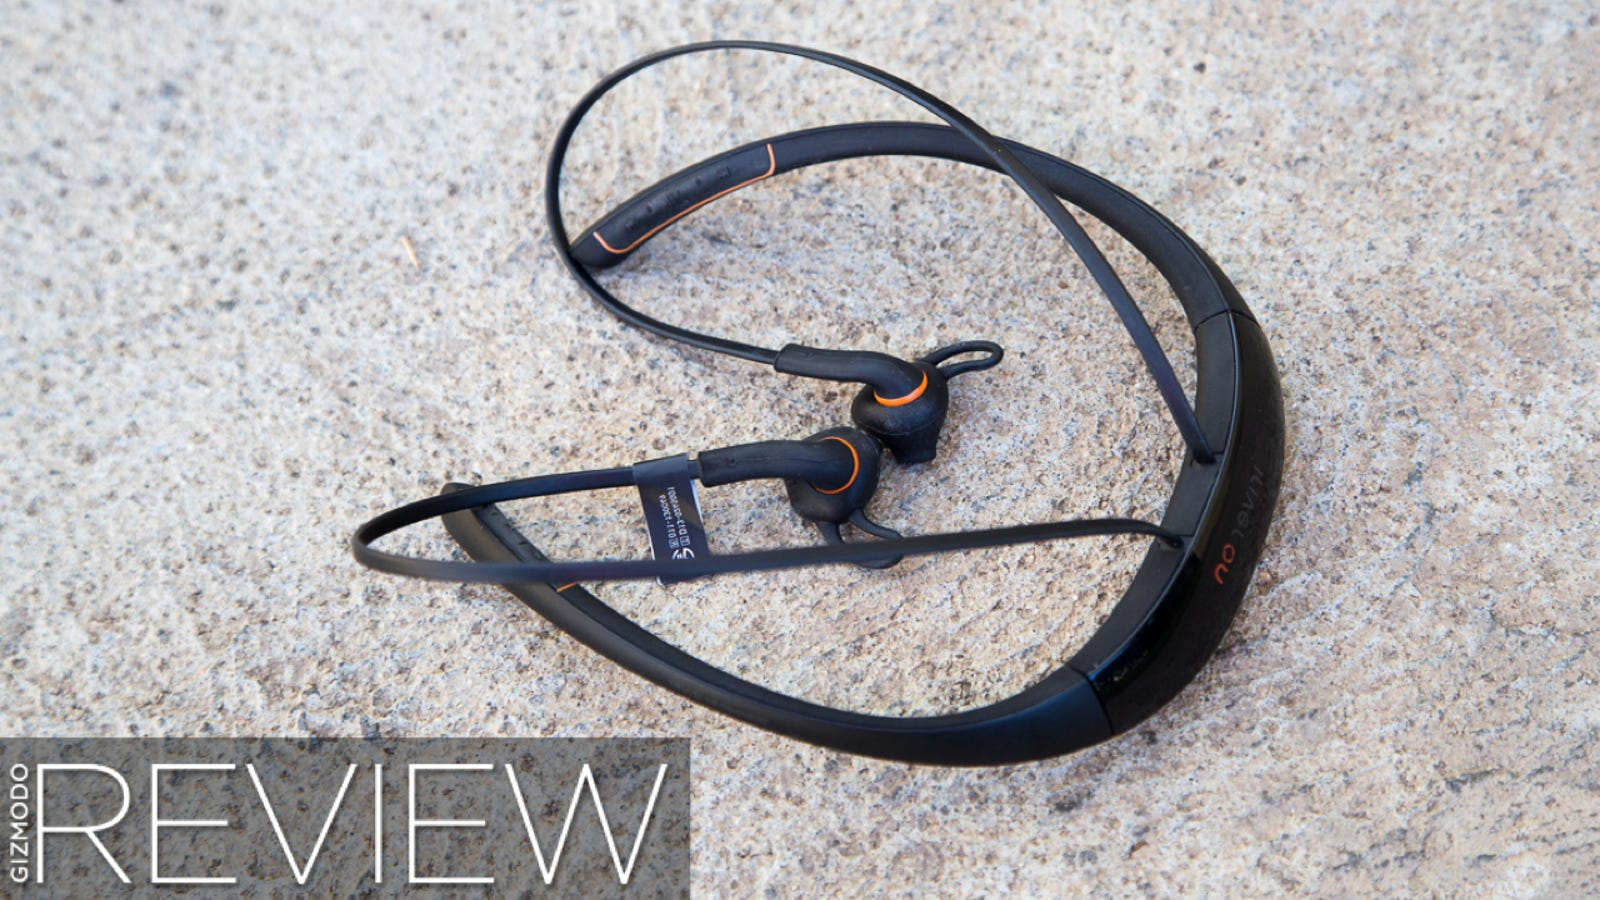 beats wireless headphones active - iRiver On Review: When Bad Apps Ruin Great Fitness Gadgets